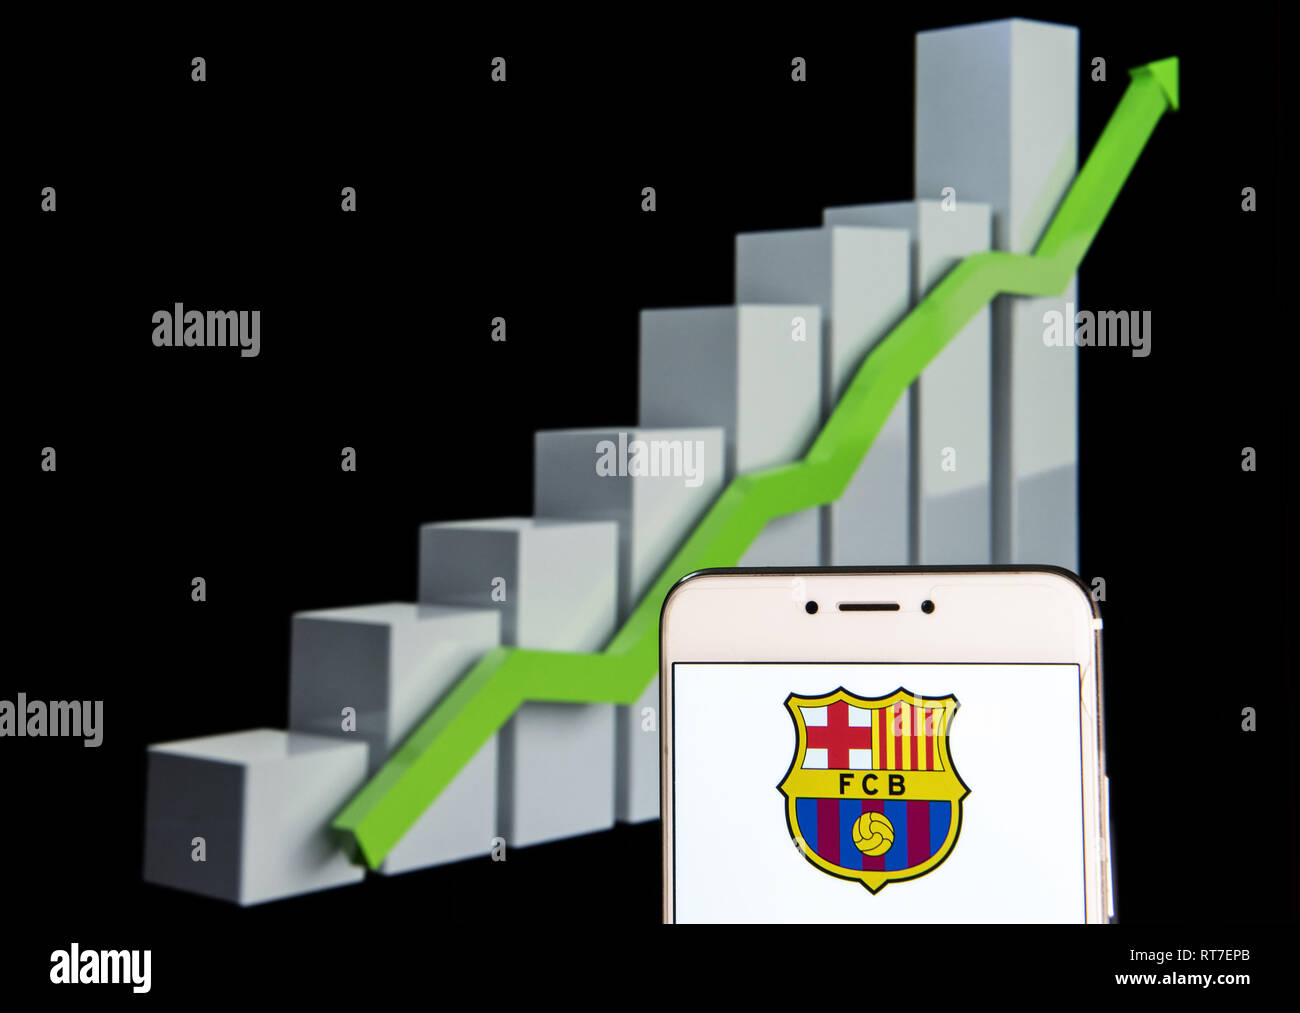 Hong Kong. 11th Feb, 2019. Spanish professional football team the Futbol Club Barcelona logo is seen on an android mobile device with an ascent growth chart in the background. Credit: Miguel Candela/SOPA Images/ZUMA Wire/Alamy Live News - Stock Image